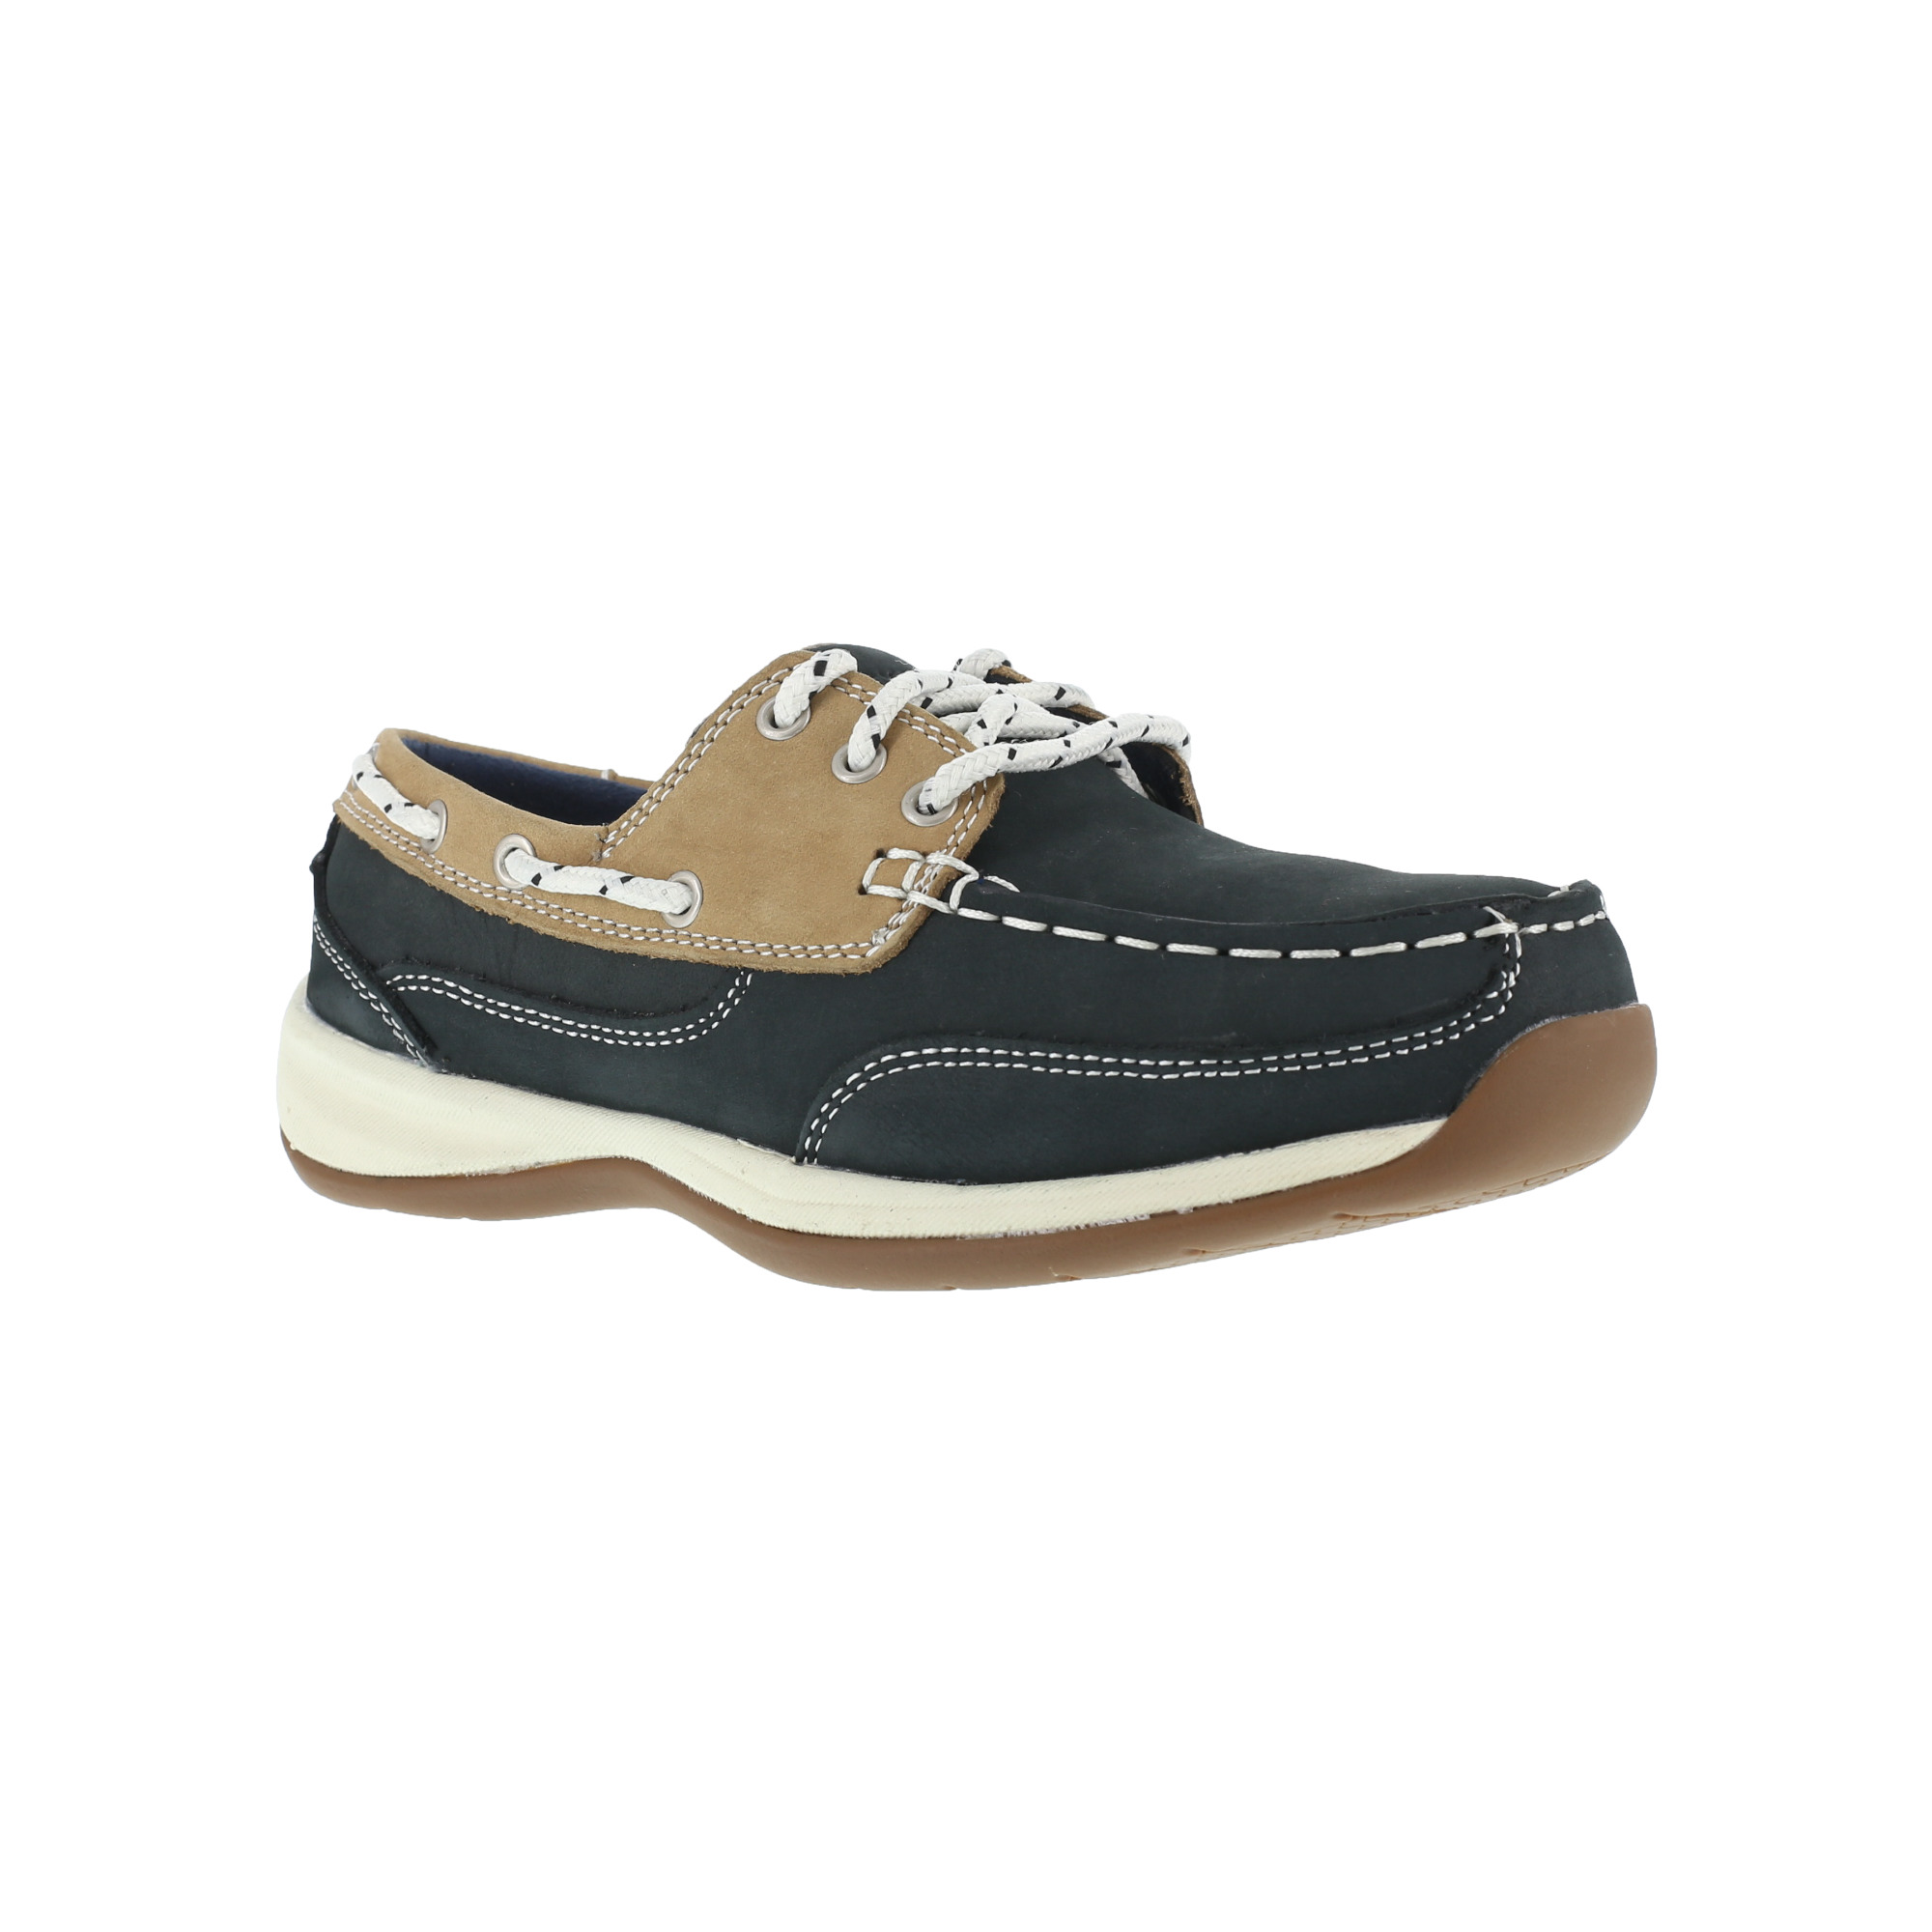 rockport s navy blue boat shoe steel toe rk670